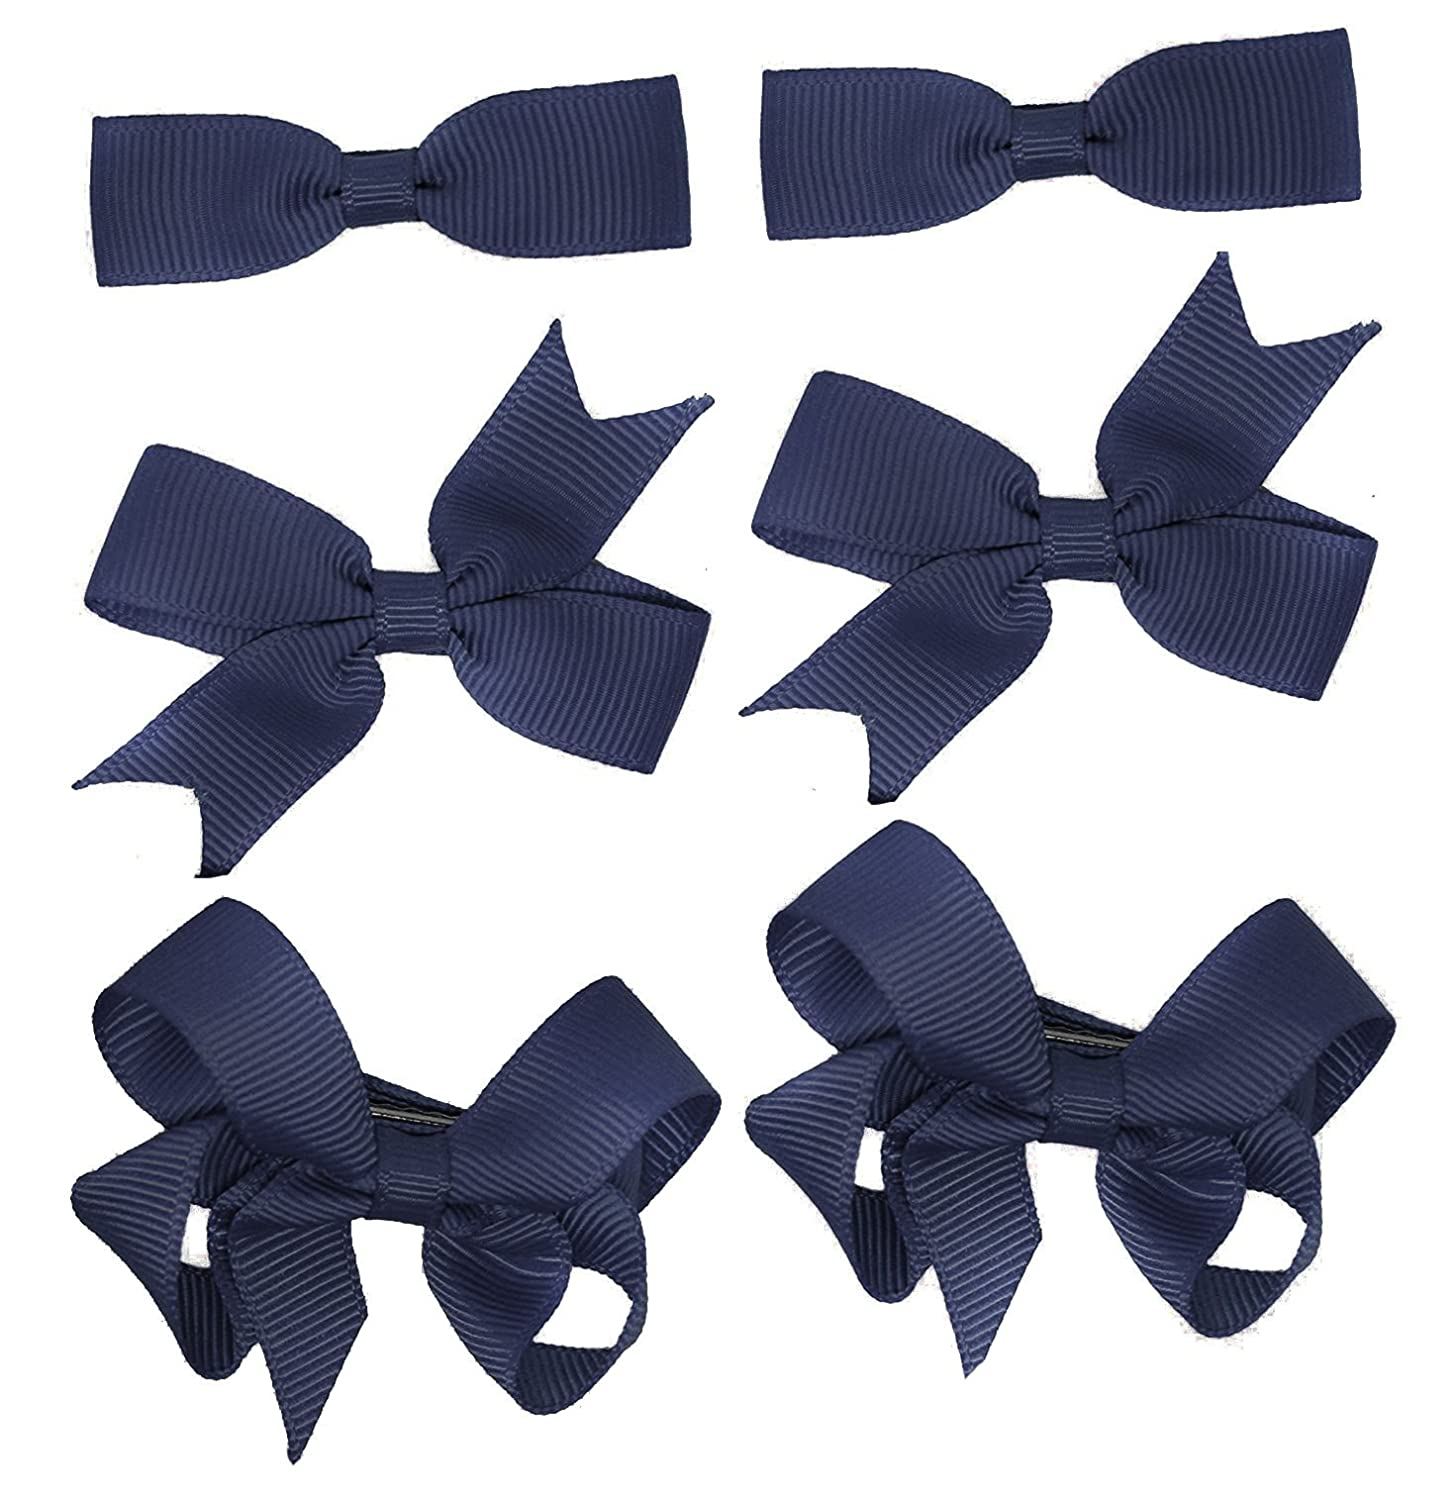 Hilai,10 Pairs 2 Tiny Boutique Grosgrain Ribbon Hair Bow Alligator Clips Barrettes for Baby Girls